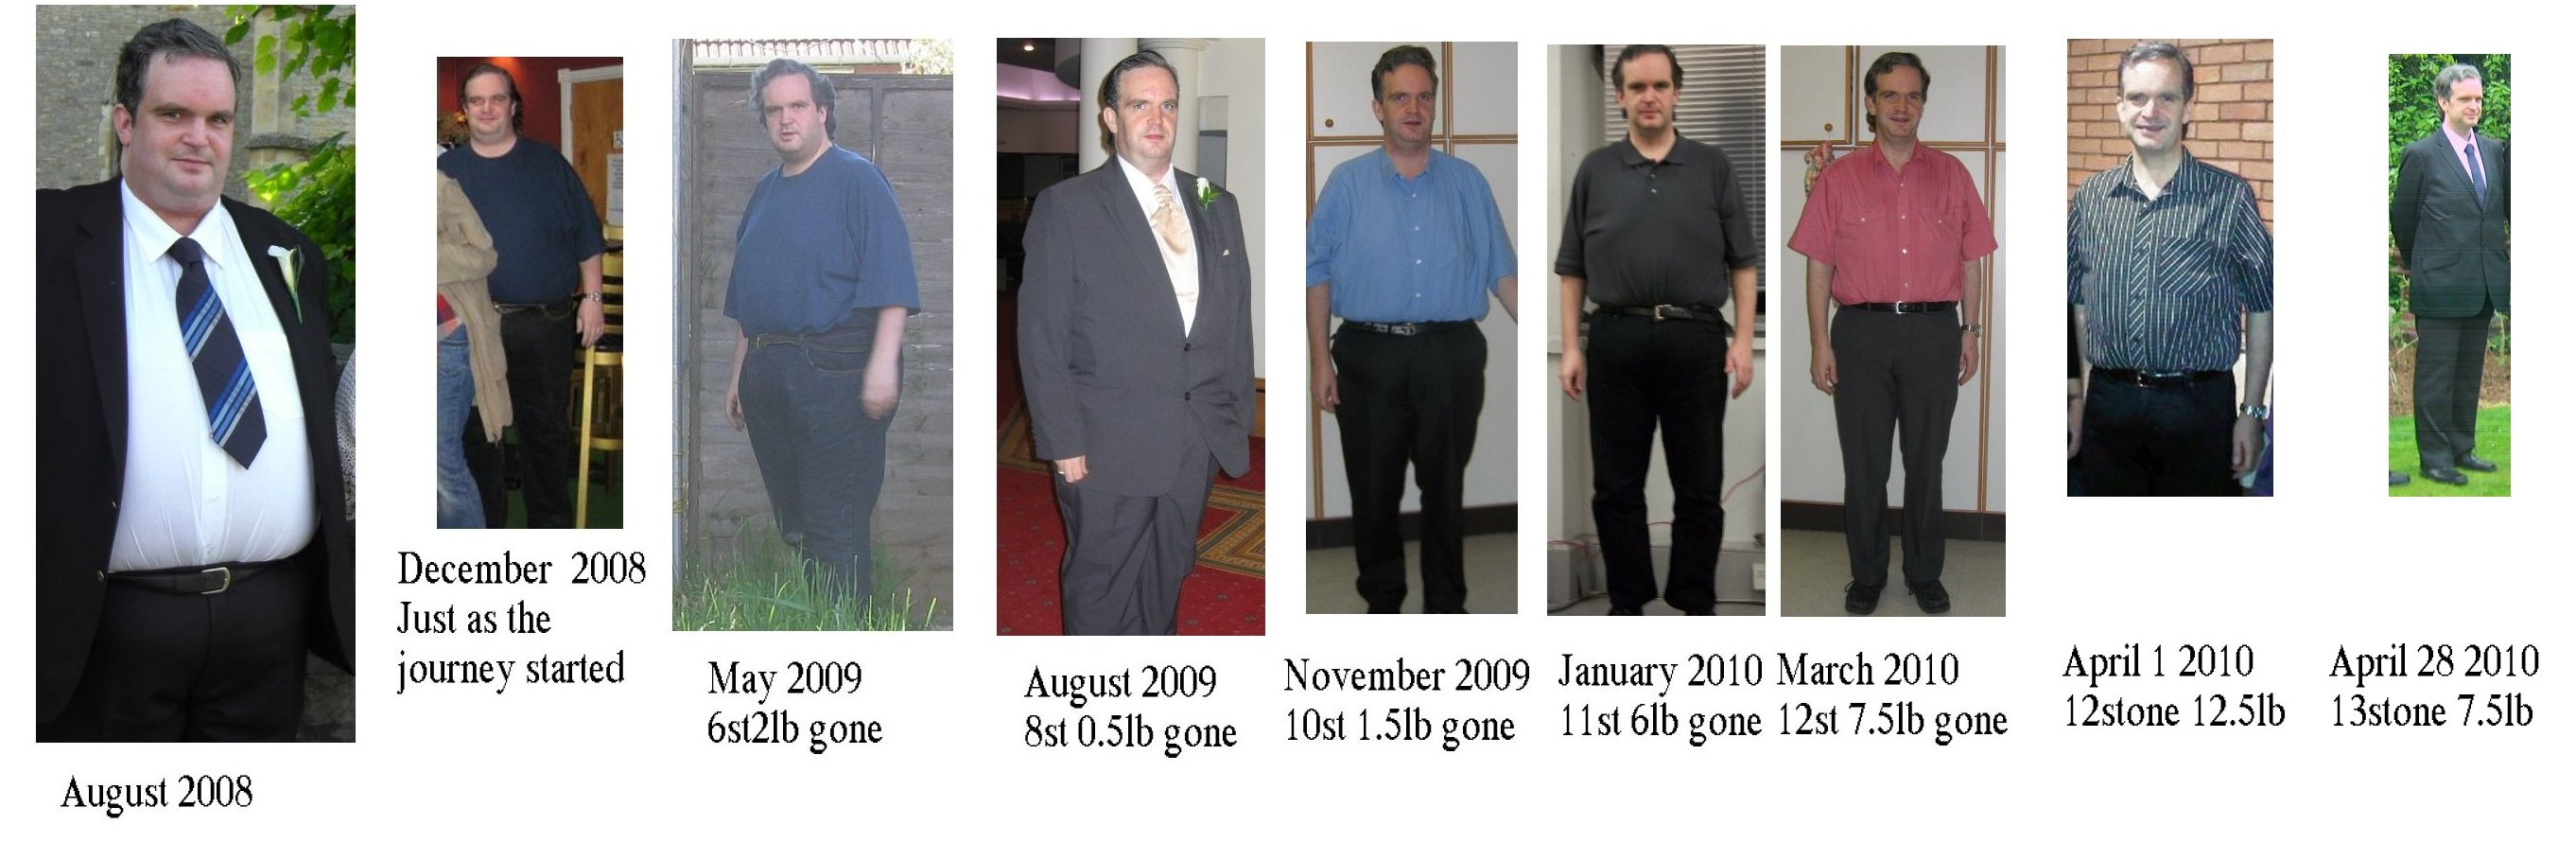 My before/during/current pictures-april-28th-2010-journey-so-far.jpg